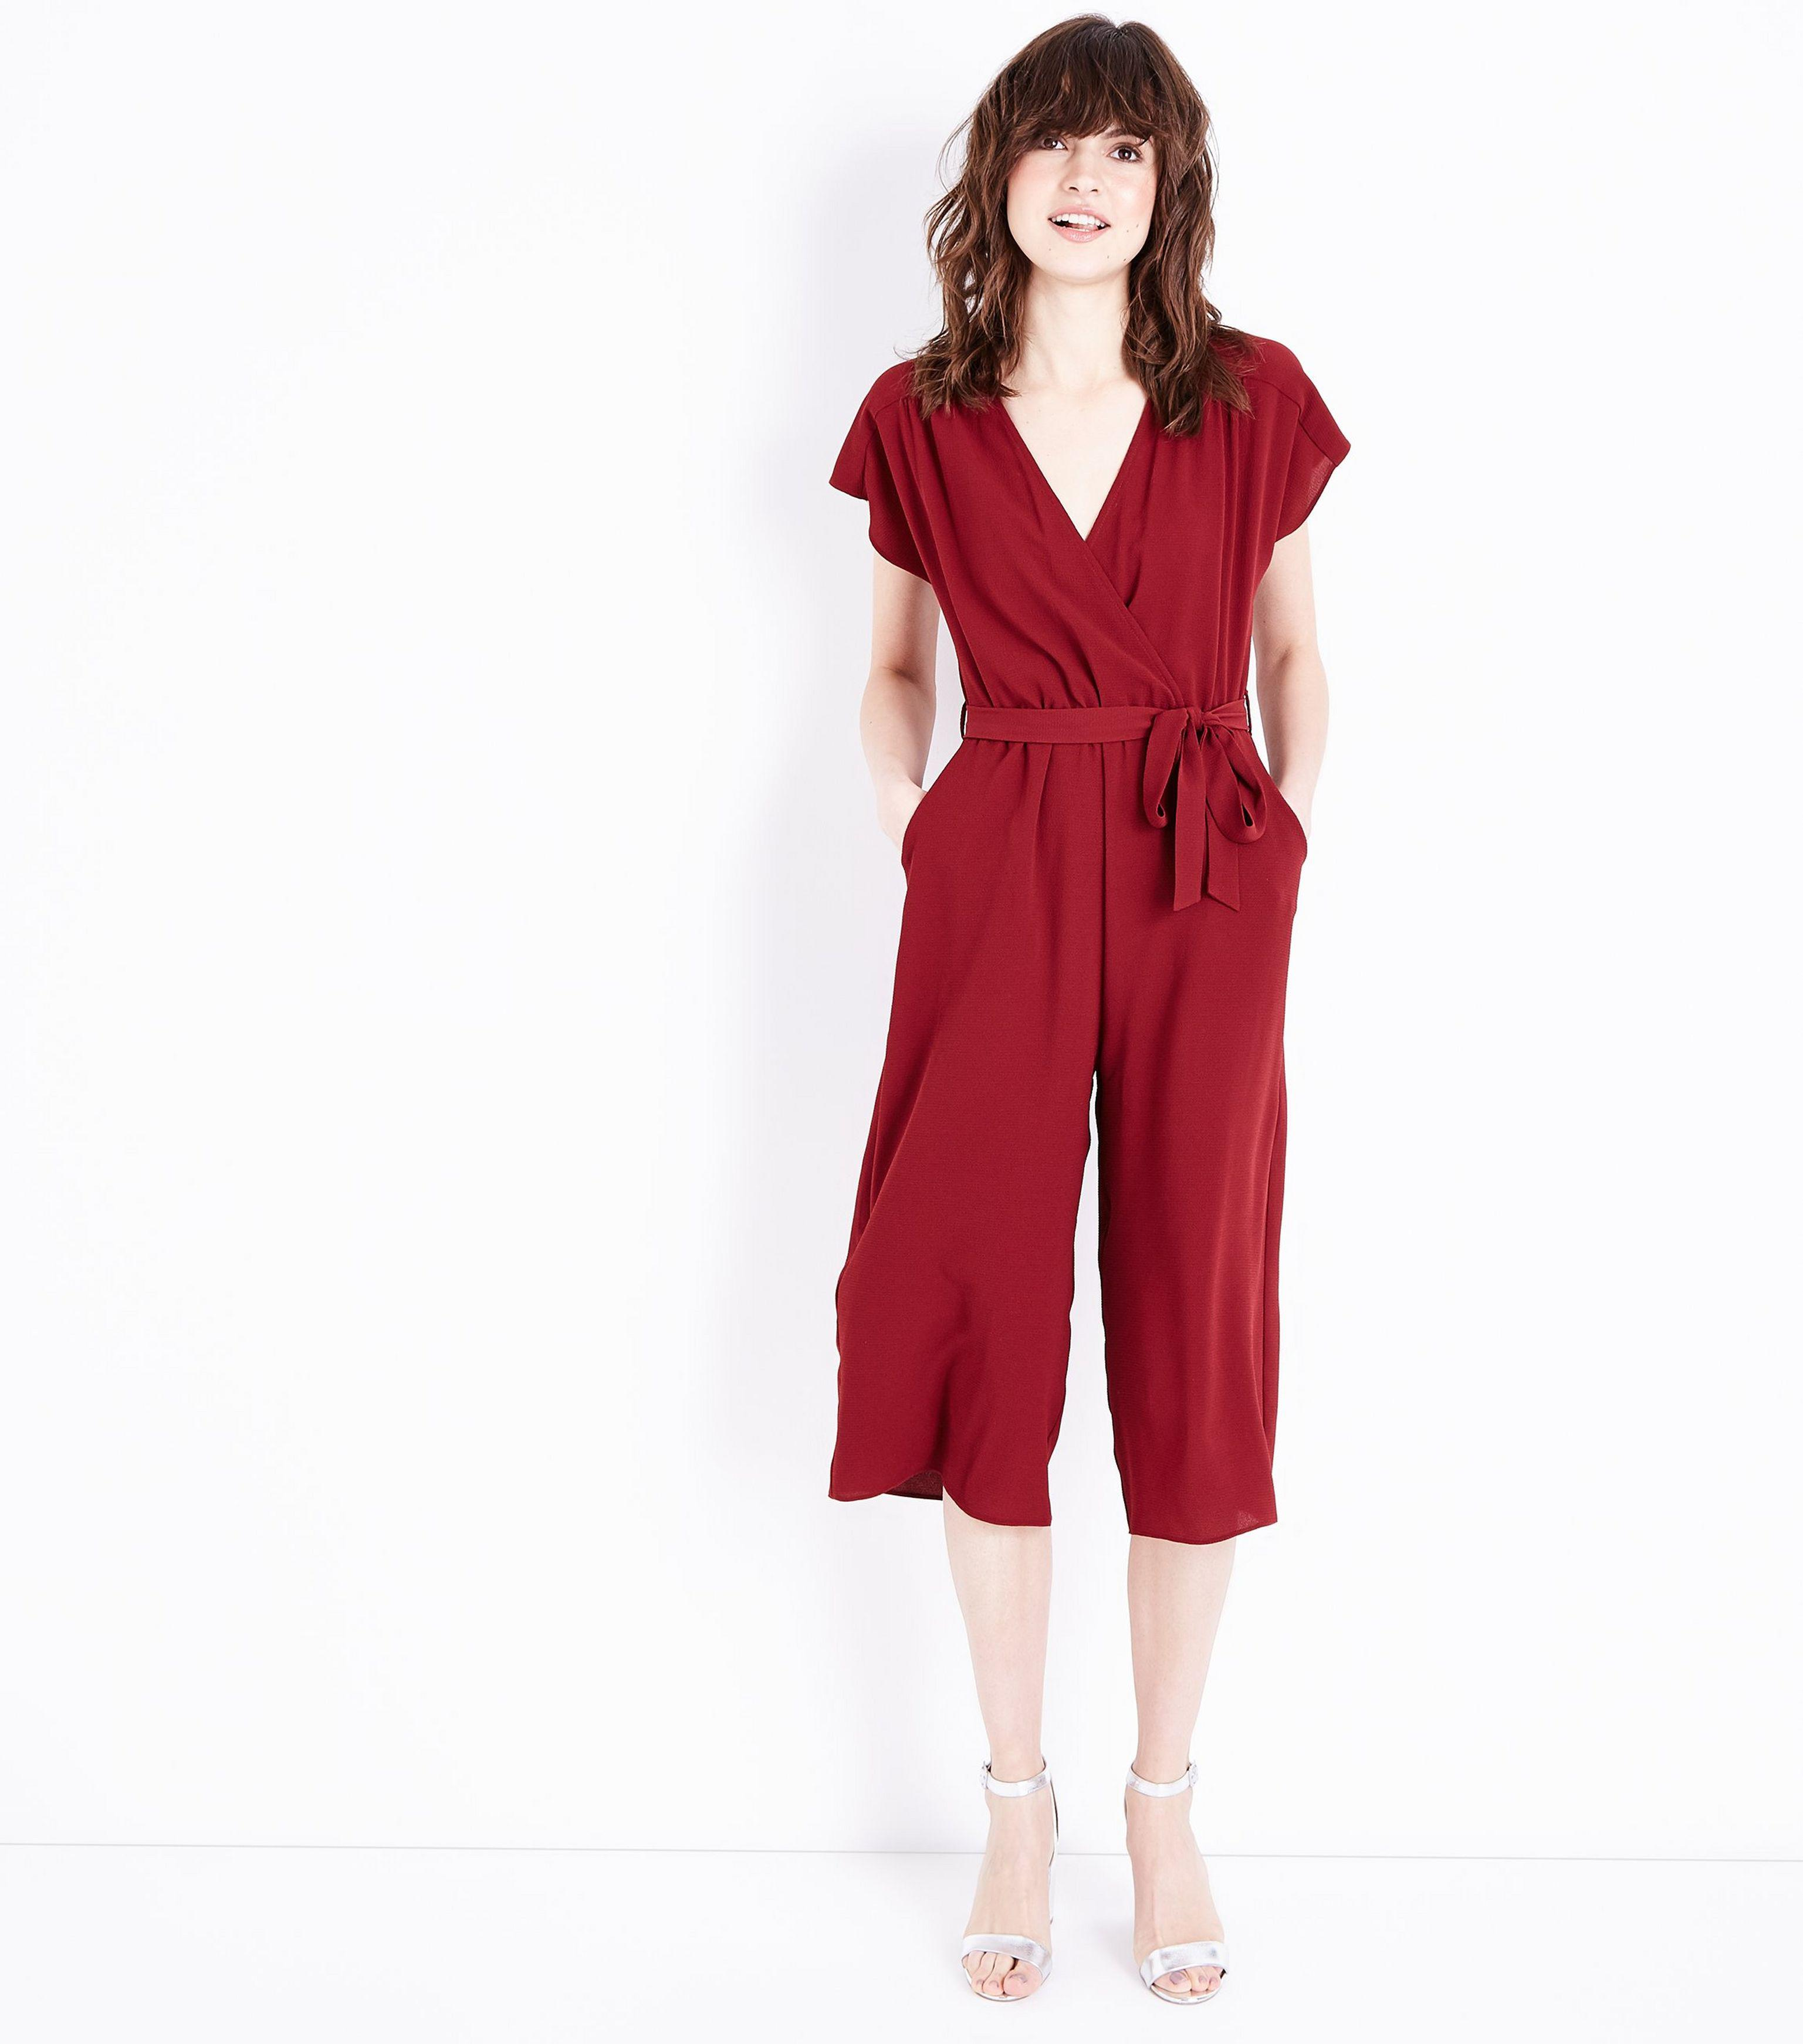 b5d132e8eb New Look Dark Red Wrap Front Culotte Jumpsuit in Red - Lyst